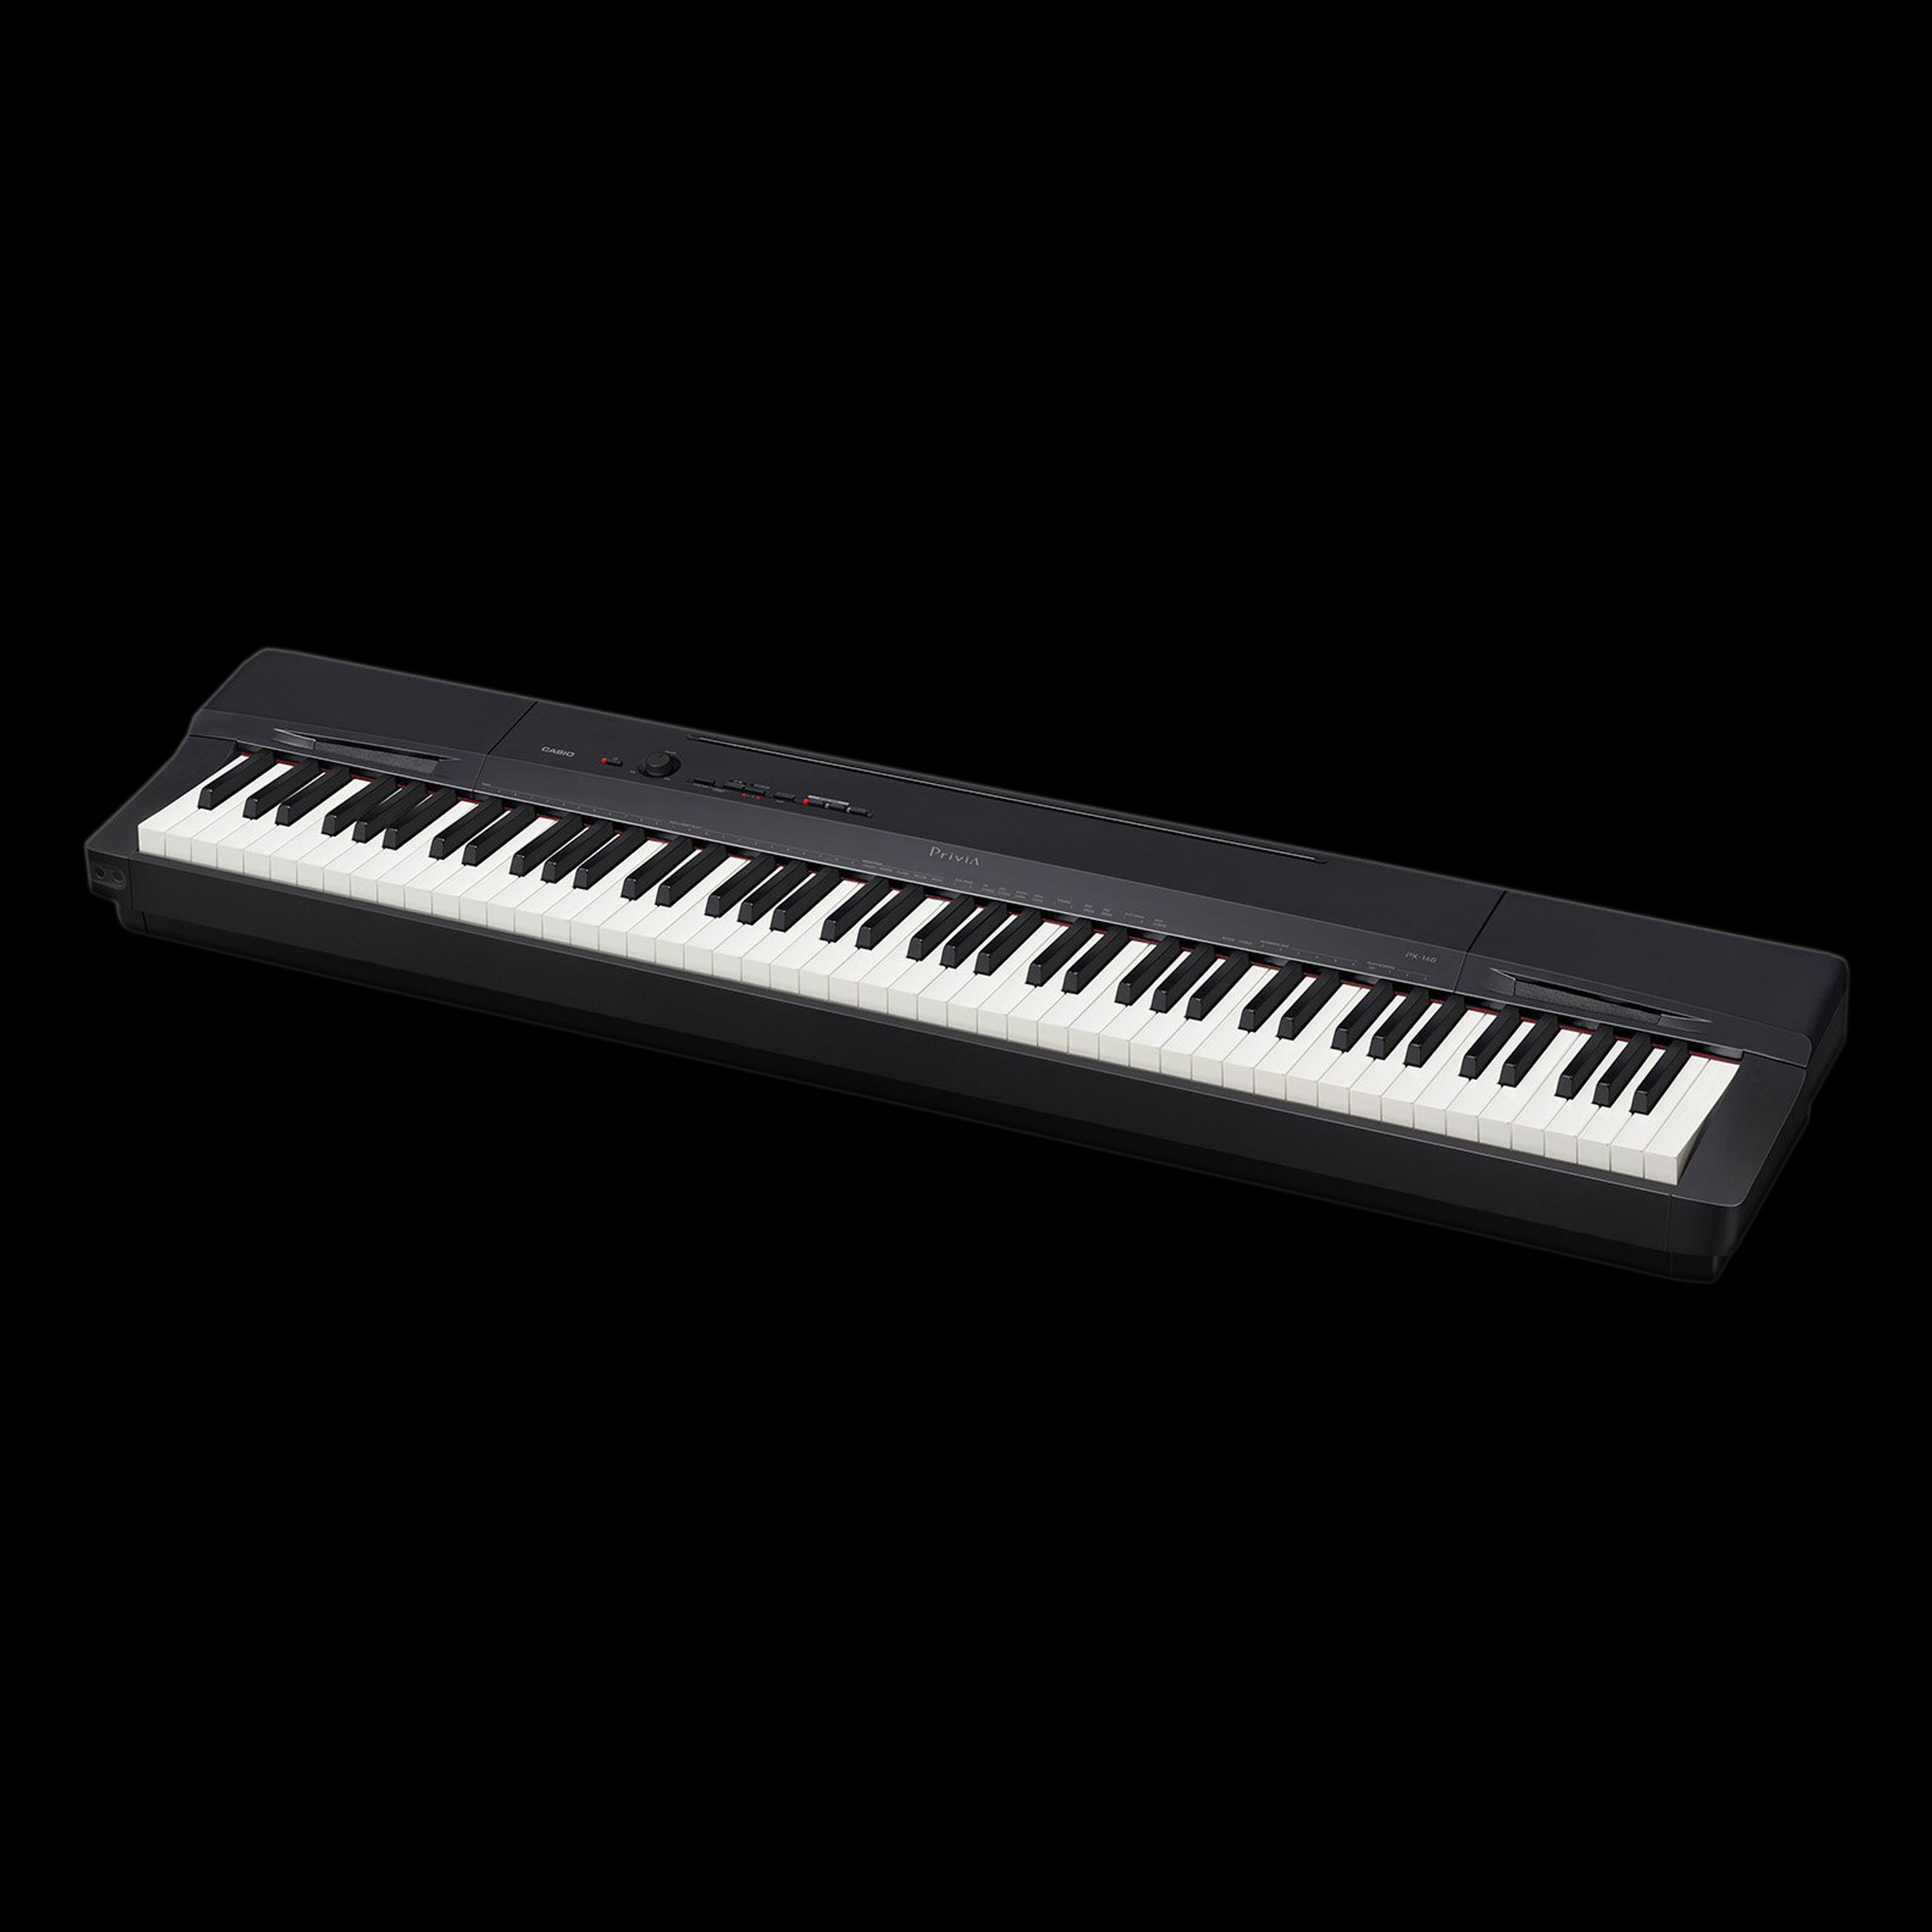 Keys Weighted Keyboard Key 88